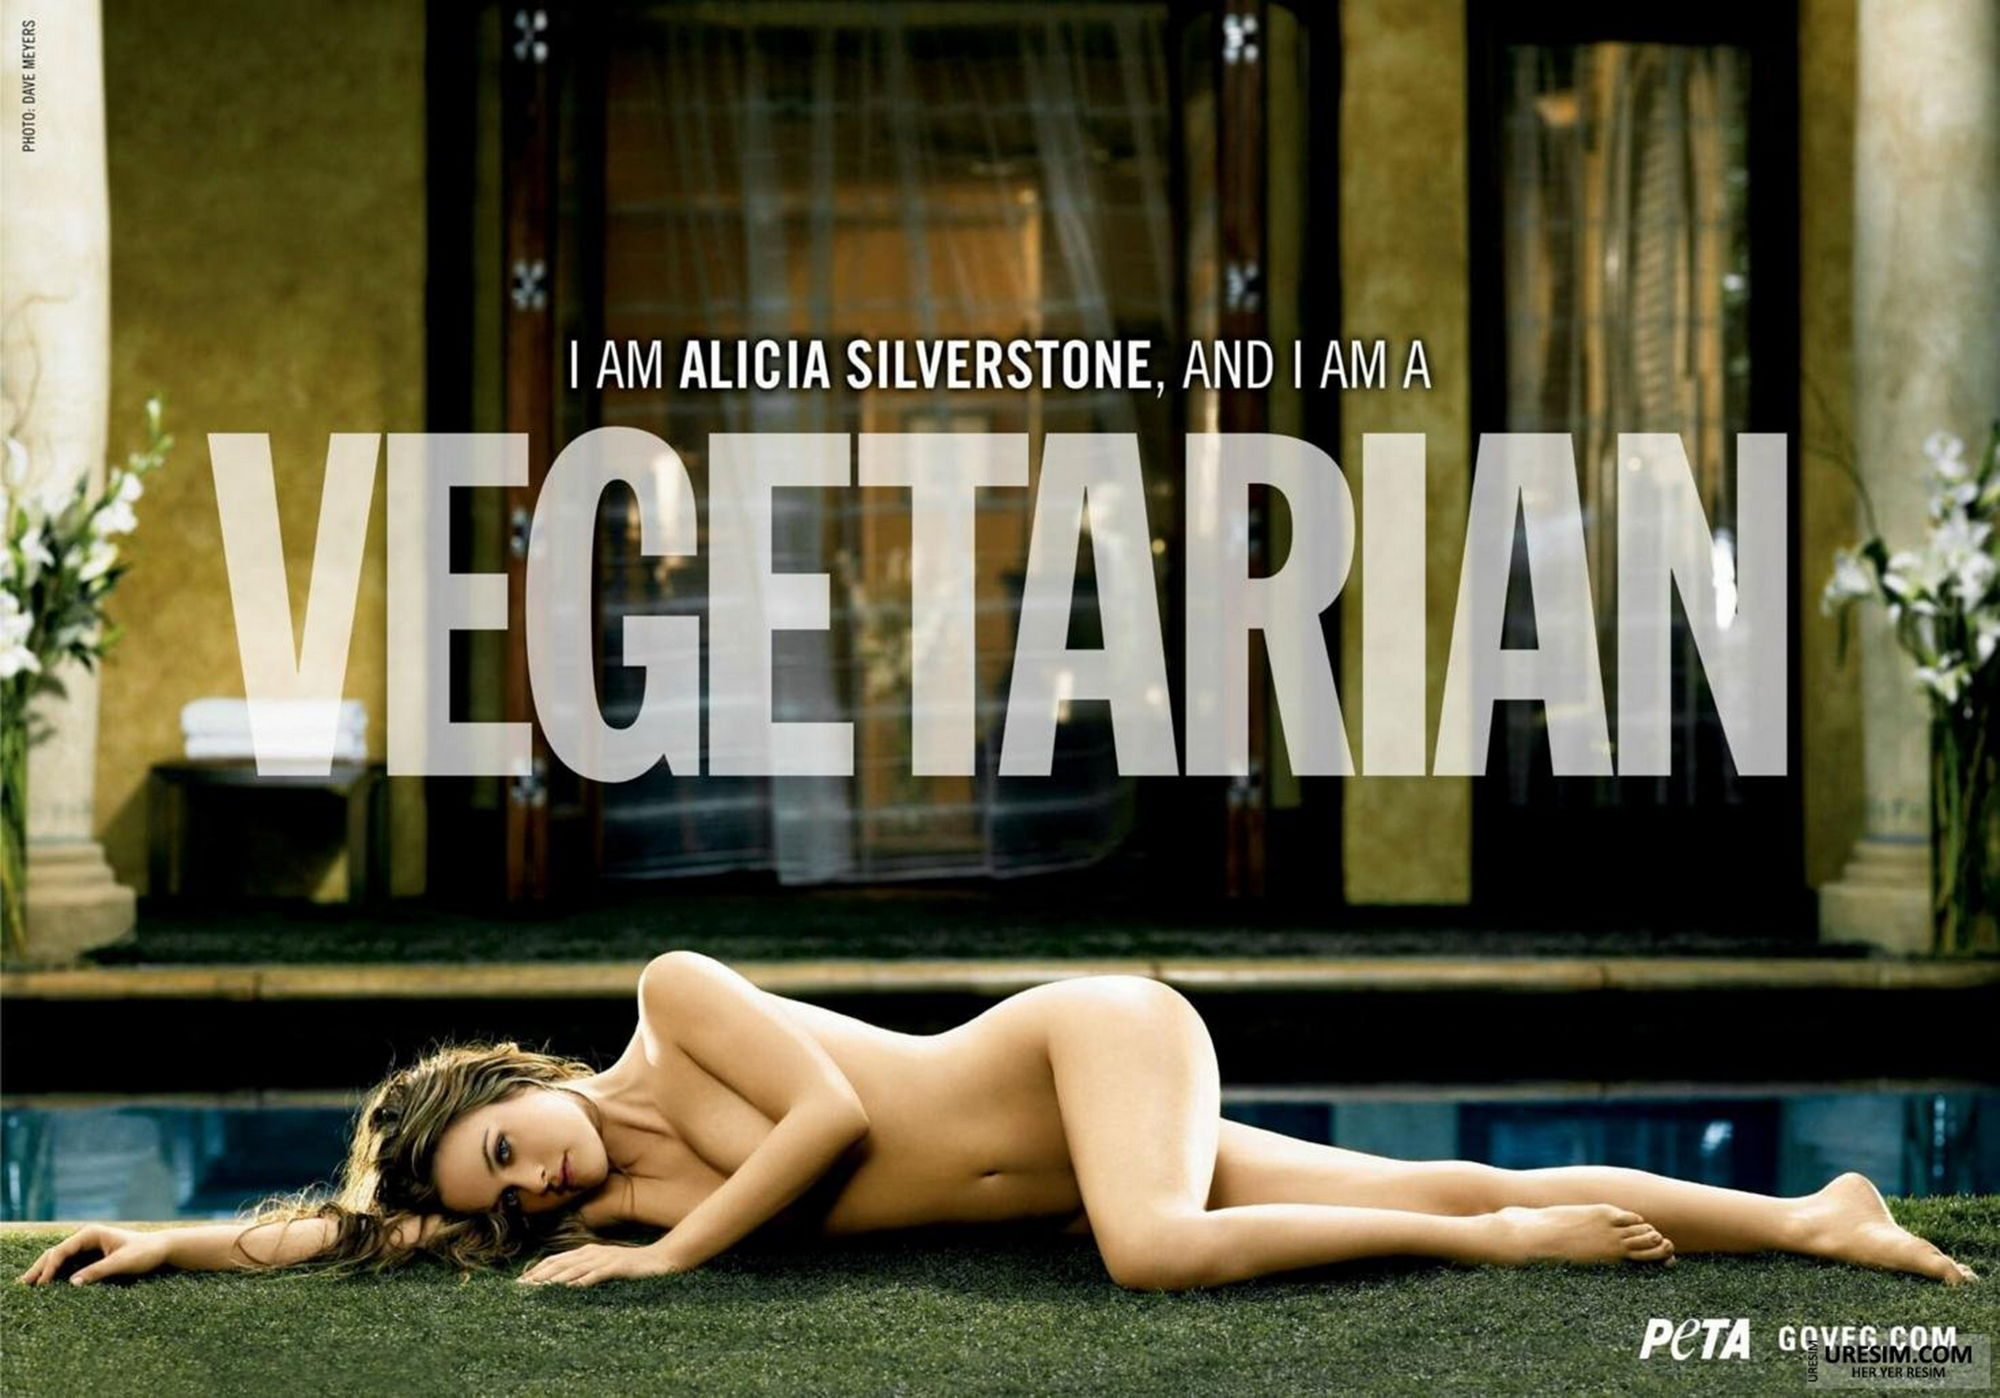 Alicia silverstone poses totally naked for peta